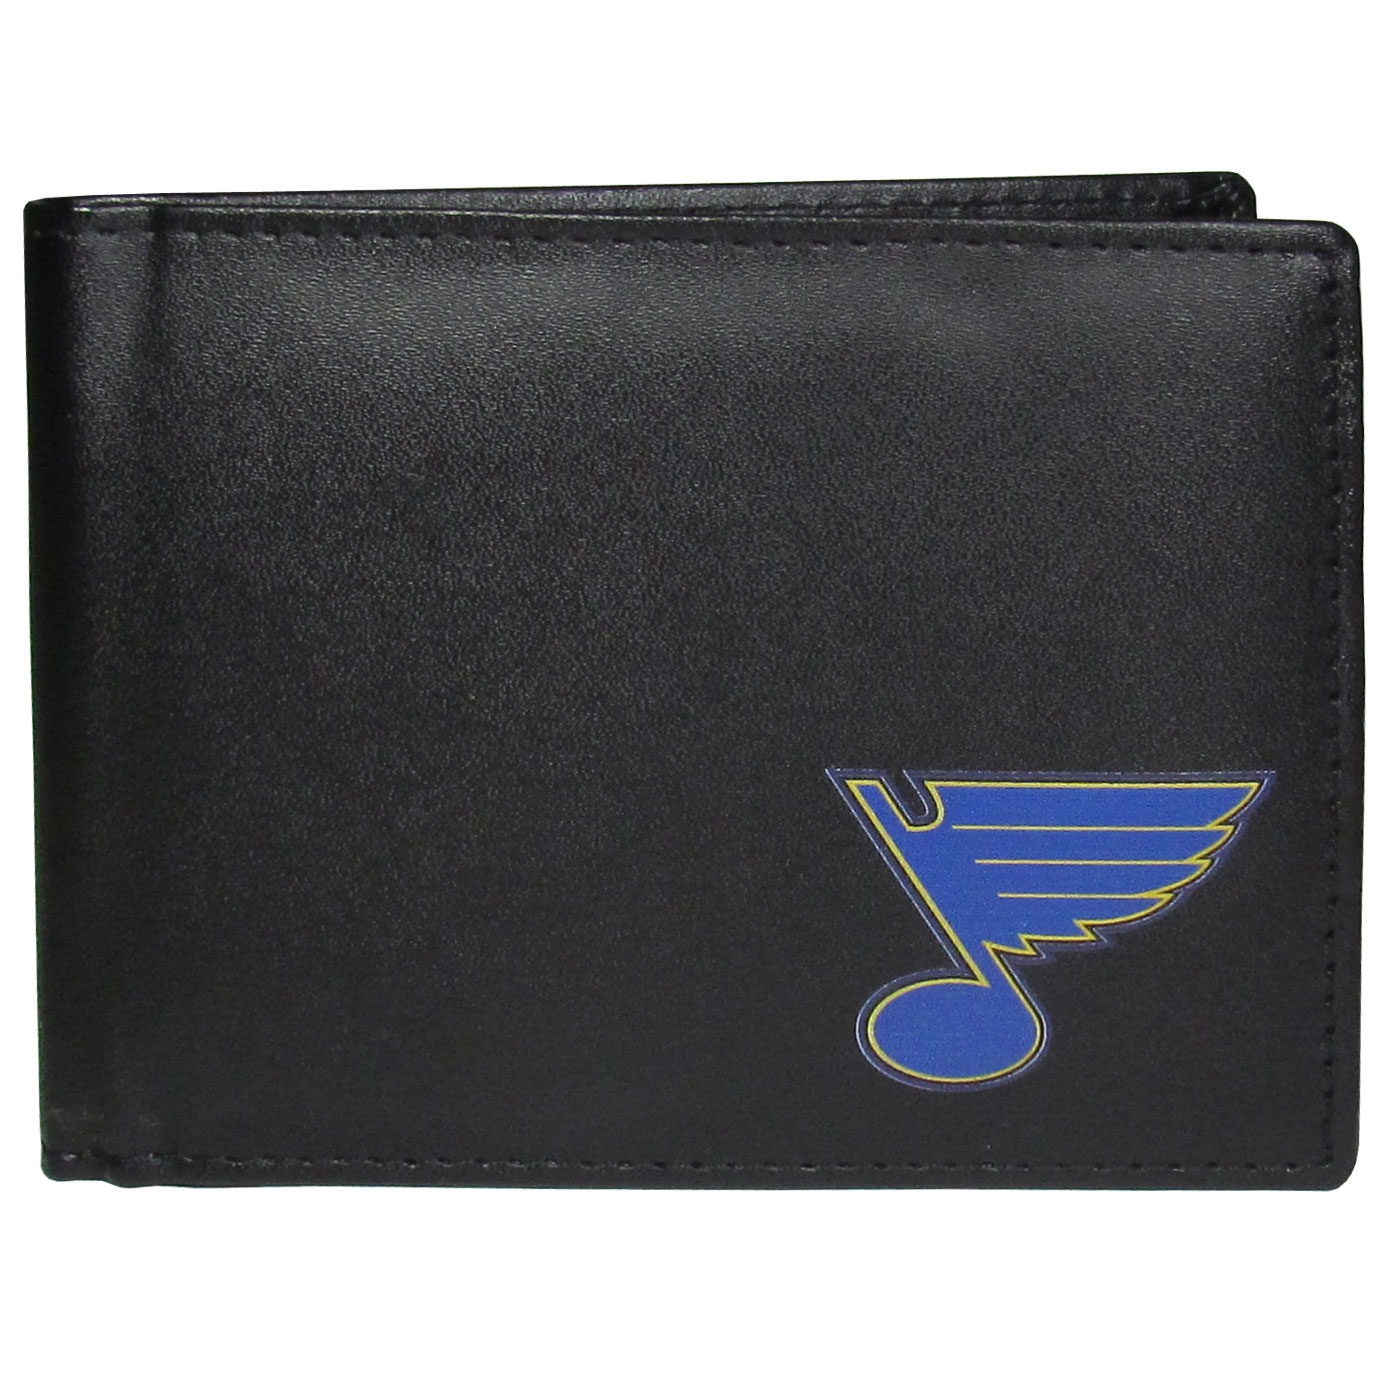 St. Louis Blues Bi-fold Wallet - Sports fans do not have to sacrifice style with this classic bi-fold wallet that sports a St. Louis Blues emblem. This men's fashion accessory has a leather grain look and expert craftmanship for a quality wallet at a great price. The wallet features inner credit card slots, windowed ID slot and a large billfold pocket. The front of the wallet features a printed team logo.